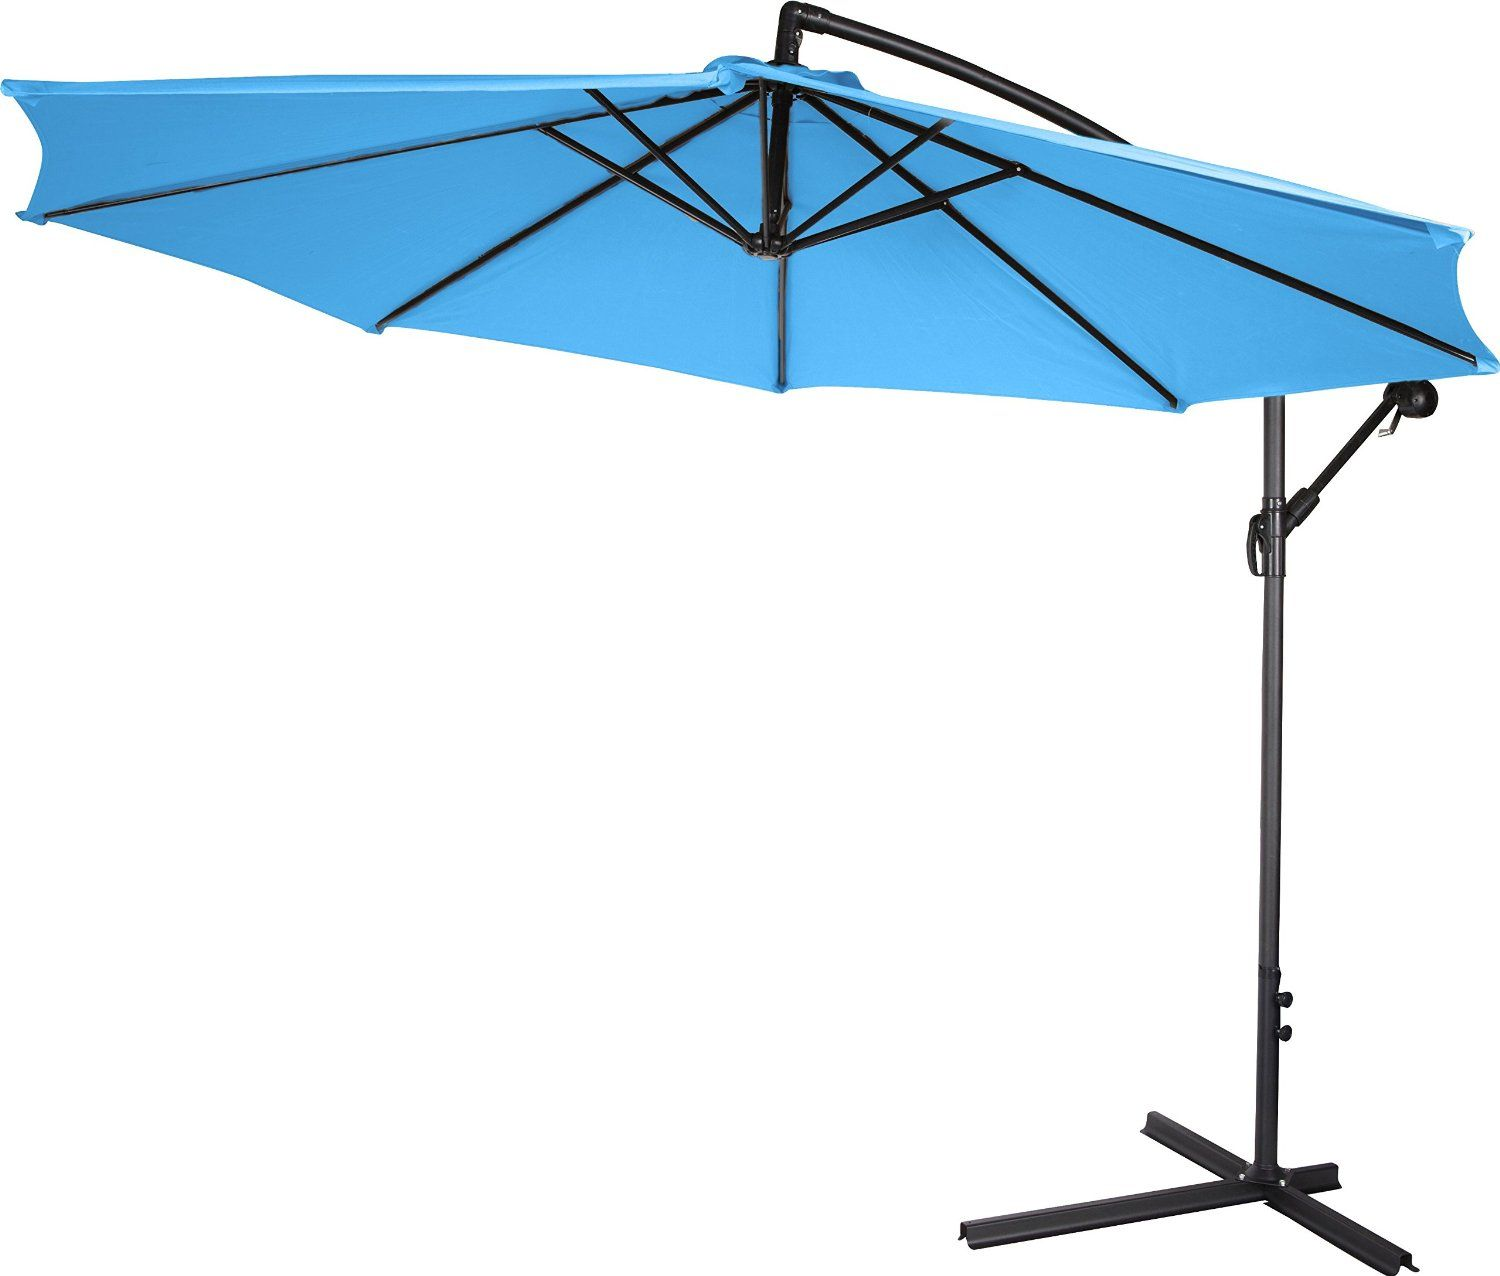 Top 10 Best Offset Umbrella Reviews Perfect 2020 Guide